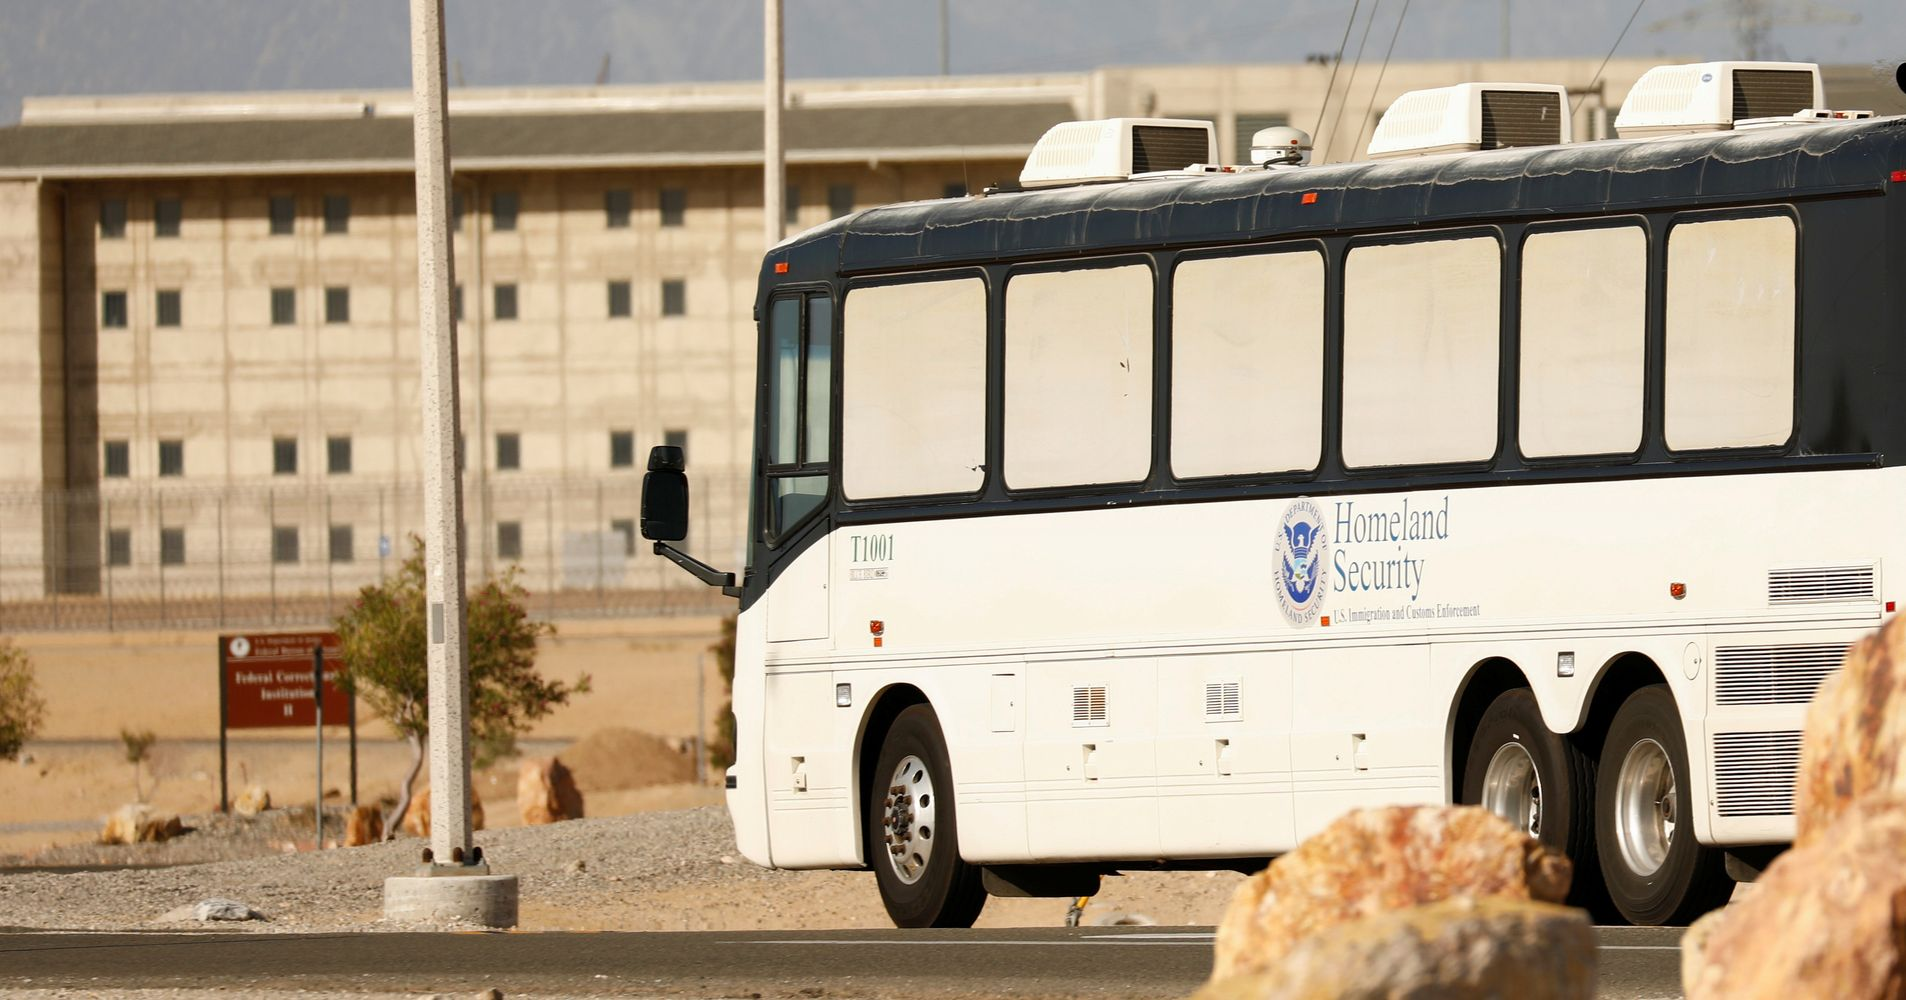 1,000 Detainees Just Got Sent To A Prison That Staffers Consider Unsafe